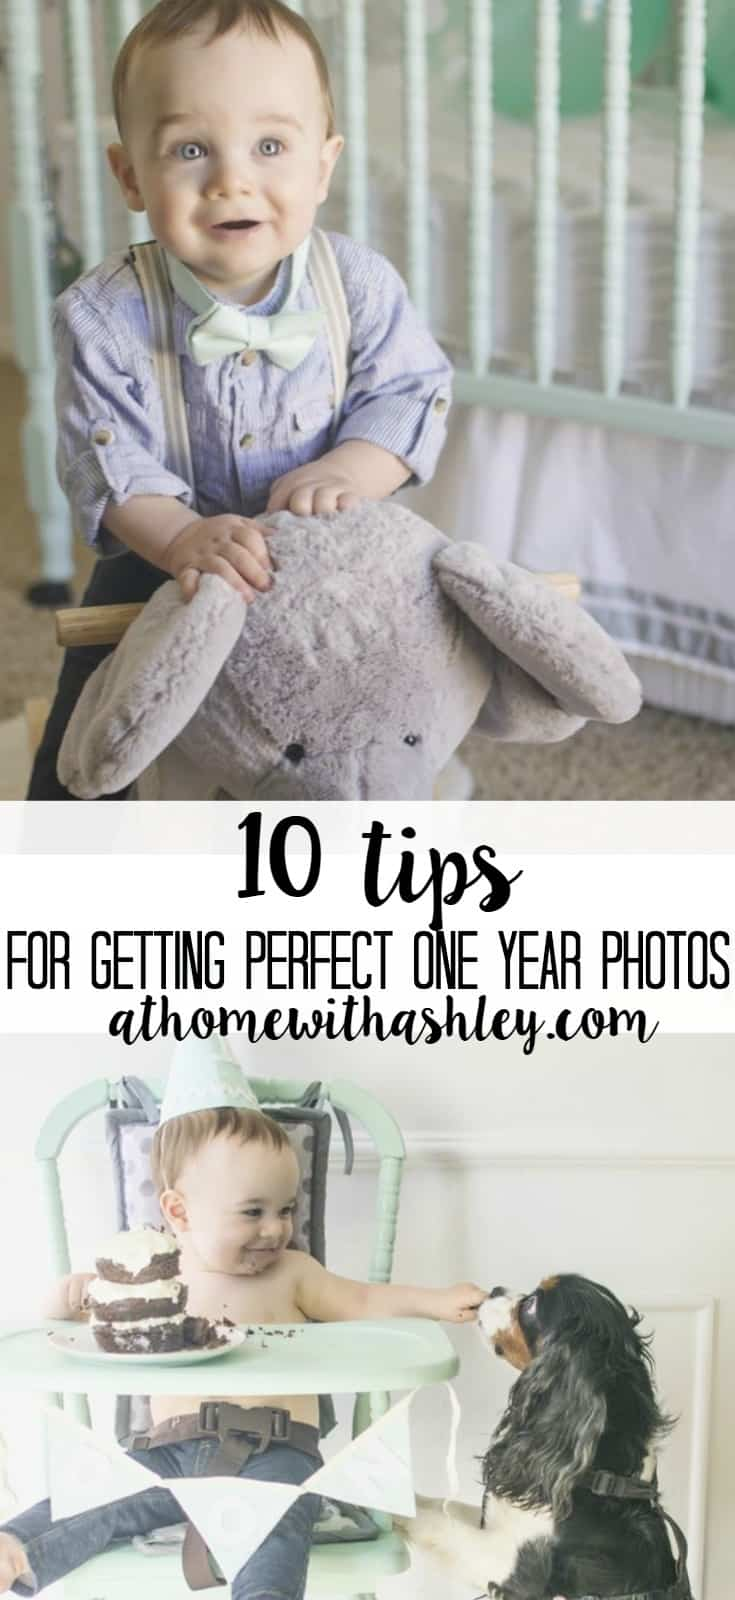 10 tips for getting perfect one year photos. Cake smash, birthday pictures of your cute baby. Mint and grey